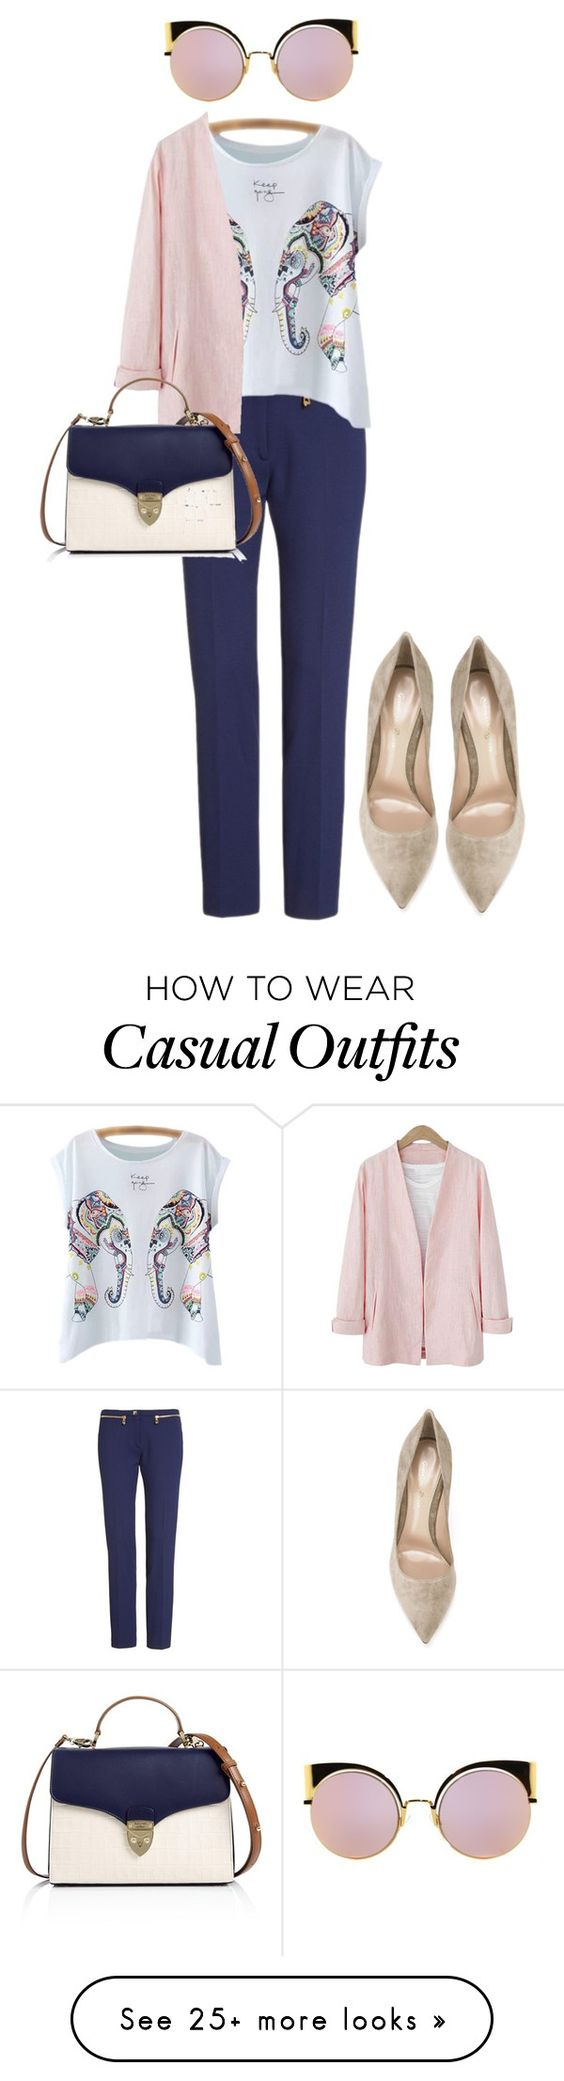 """""""casually classic"""" by monicawhb on Polyvore featuring Versace, Gianvito Rossi, Aspinal of London and Fendi"""